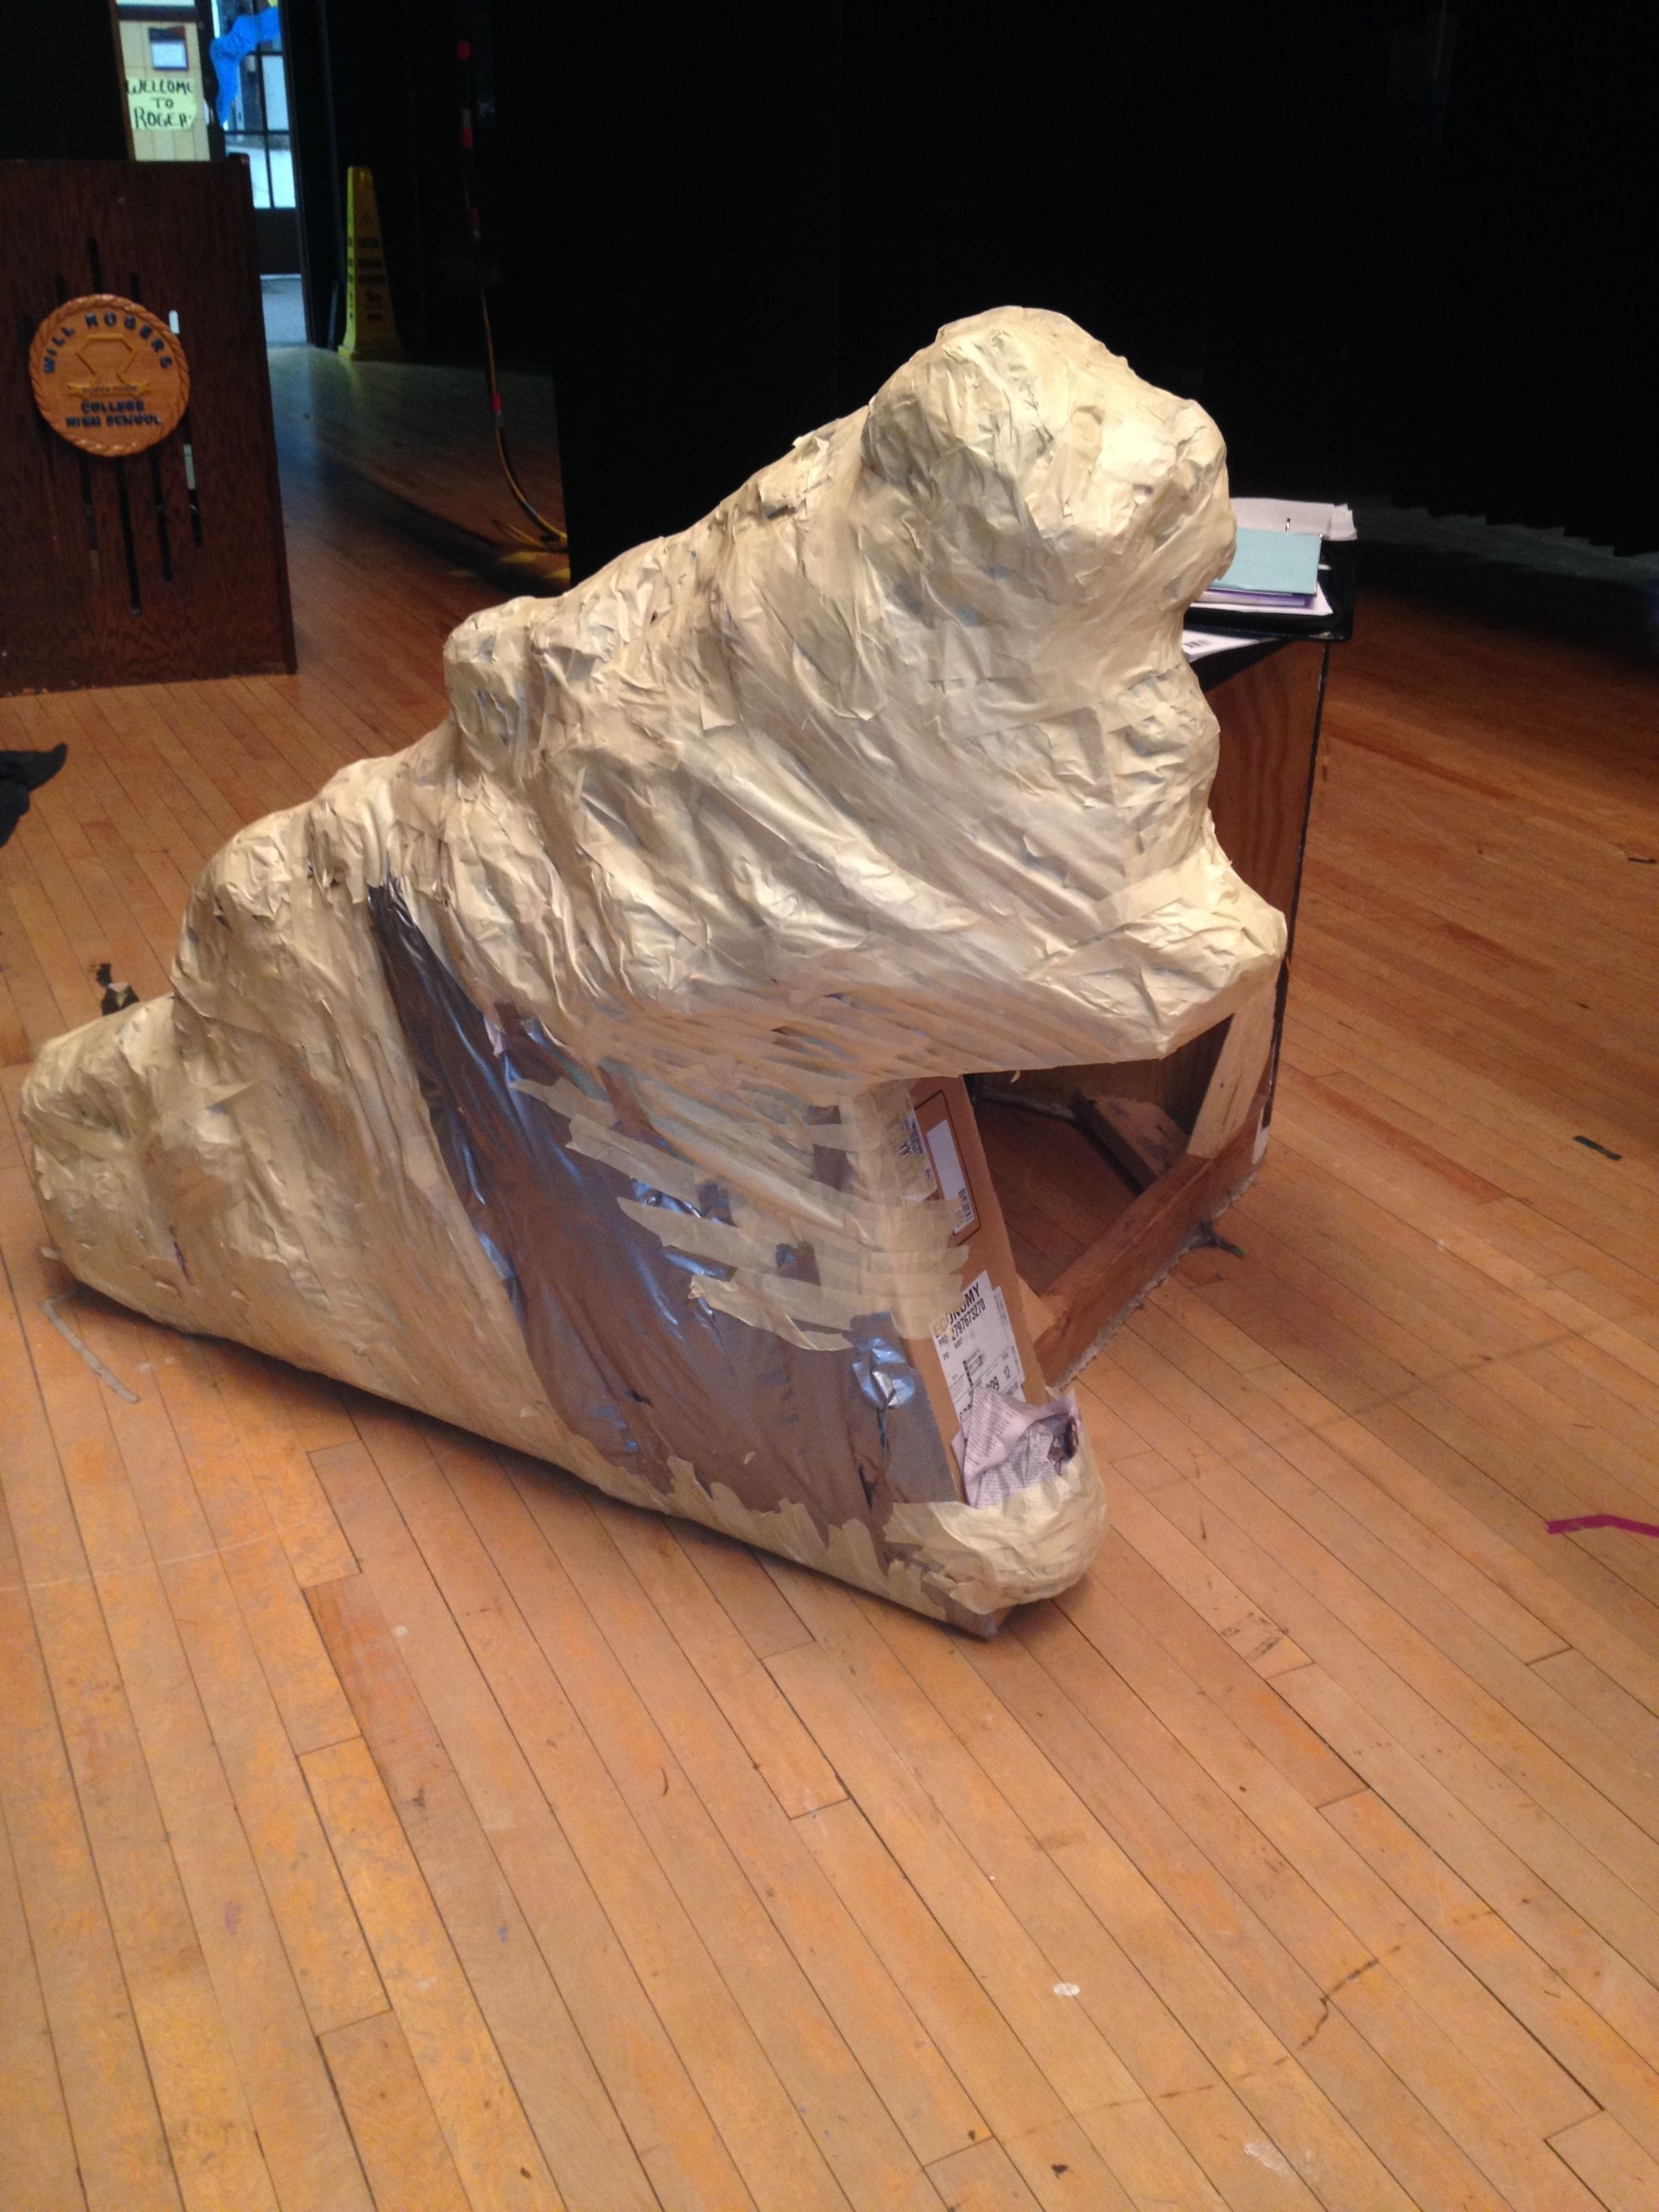 Lion King Riser Boulder Cover Ups I Used Boxes Stacked Them On Top Of Each Other Taped Lots Of Newspaper To Get The Bumpy Look I Wanted Filled In The G